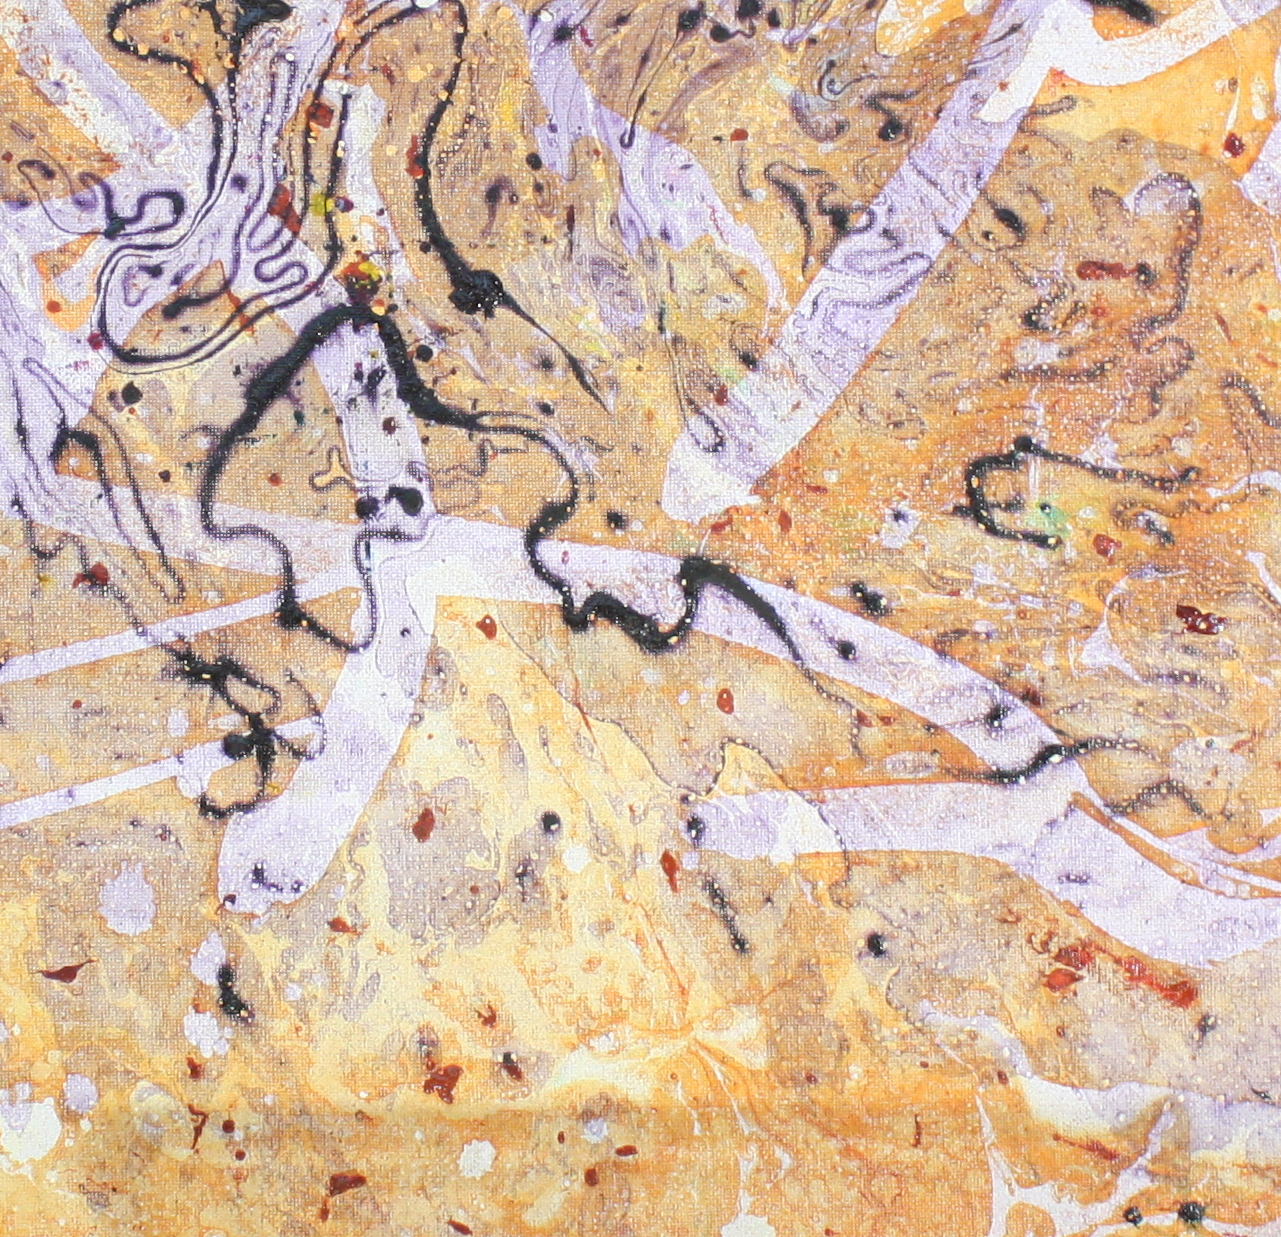 53 painting 50x100 (8)